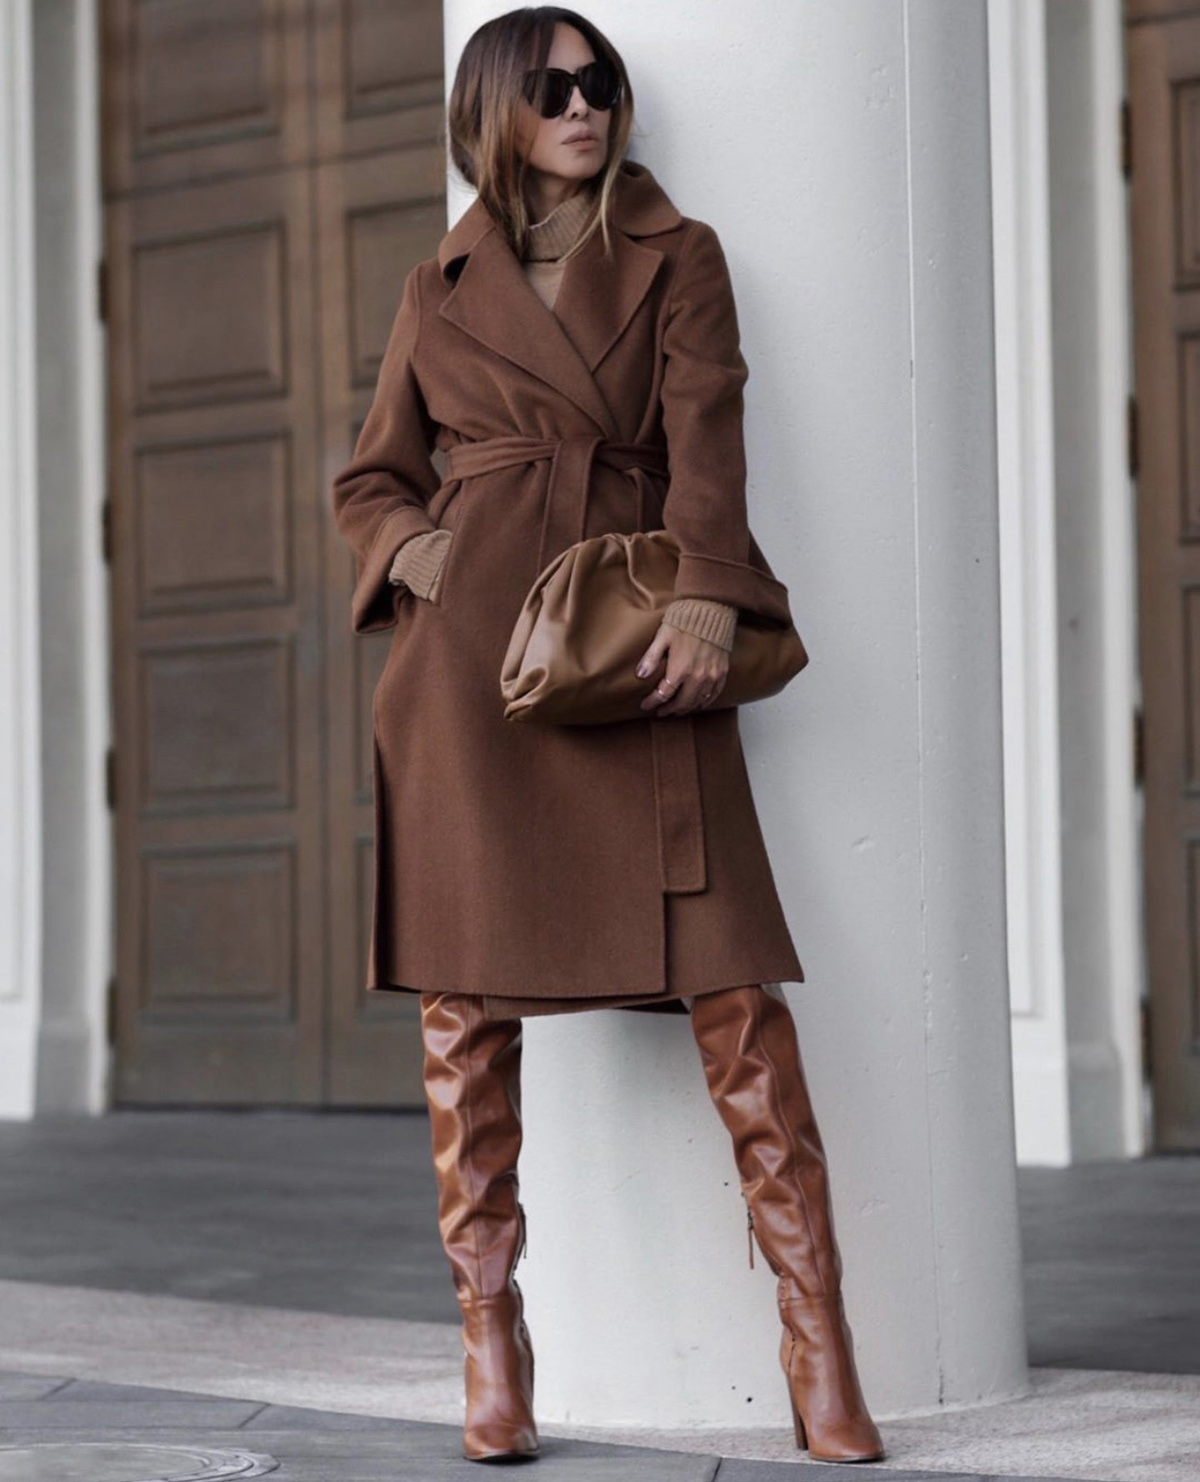 Coats Every Woman Should Own, belted wool coat, fall outfit inspiration by lolario style | lolariostyle.com